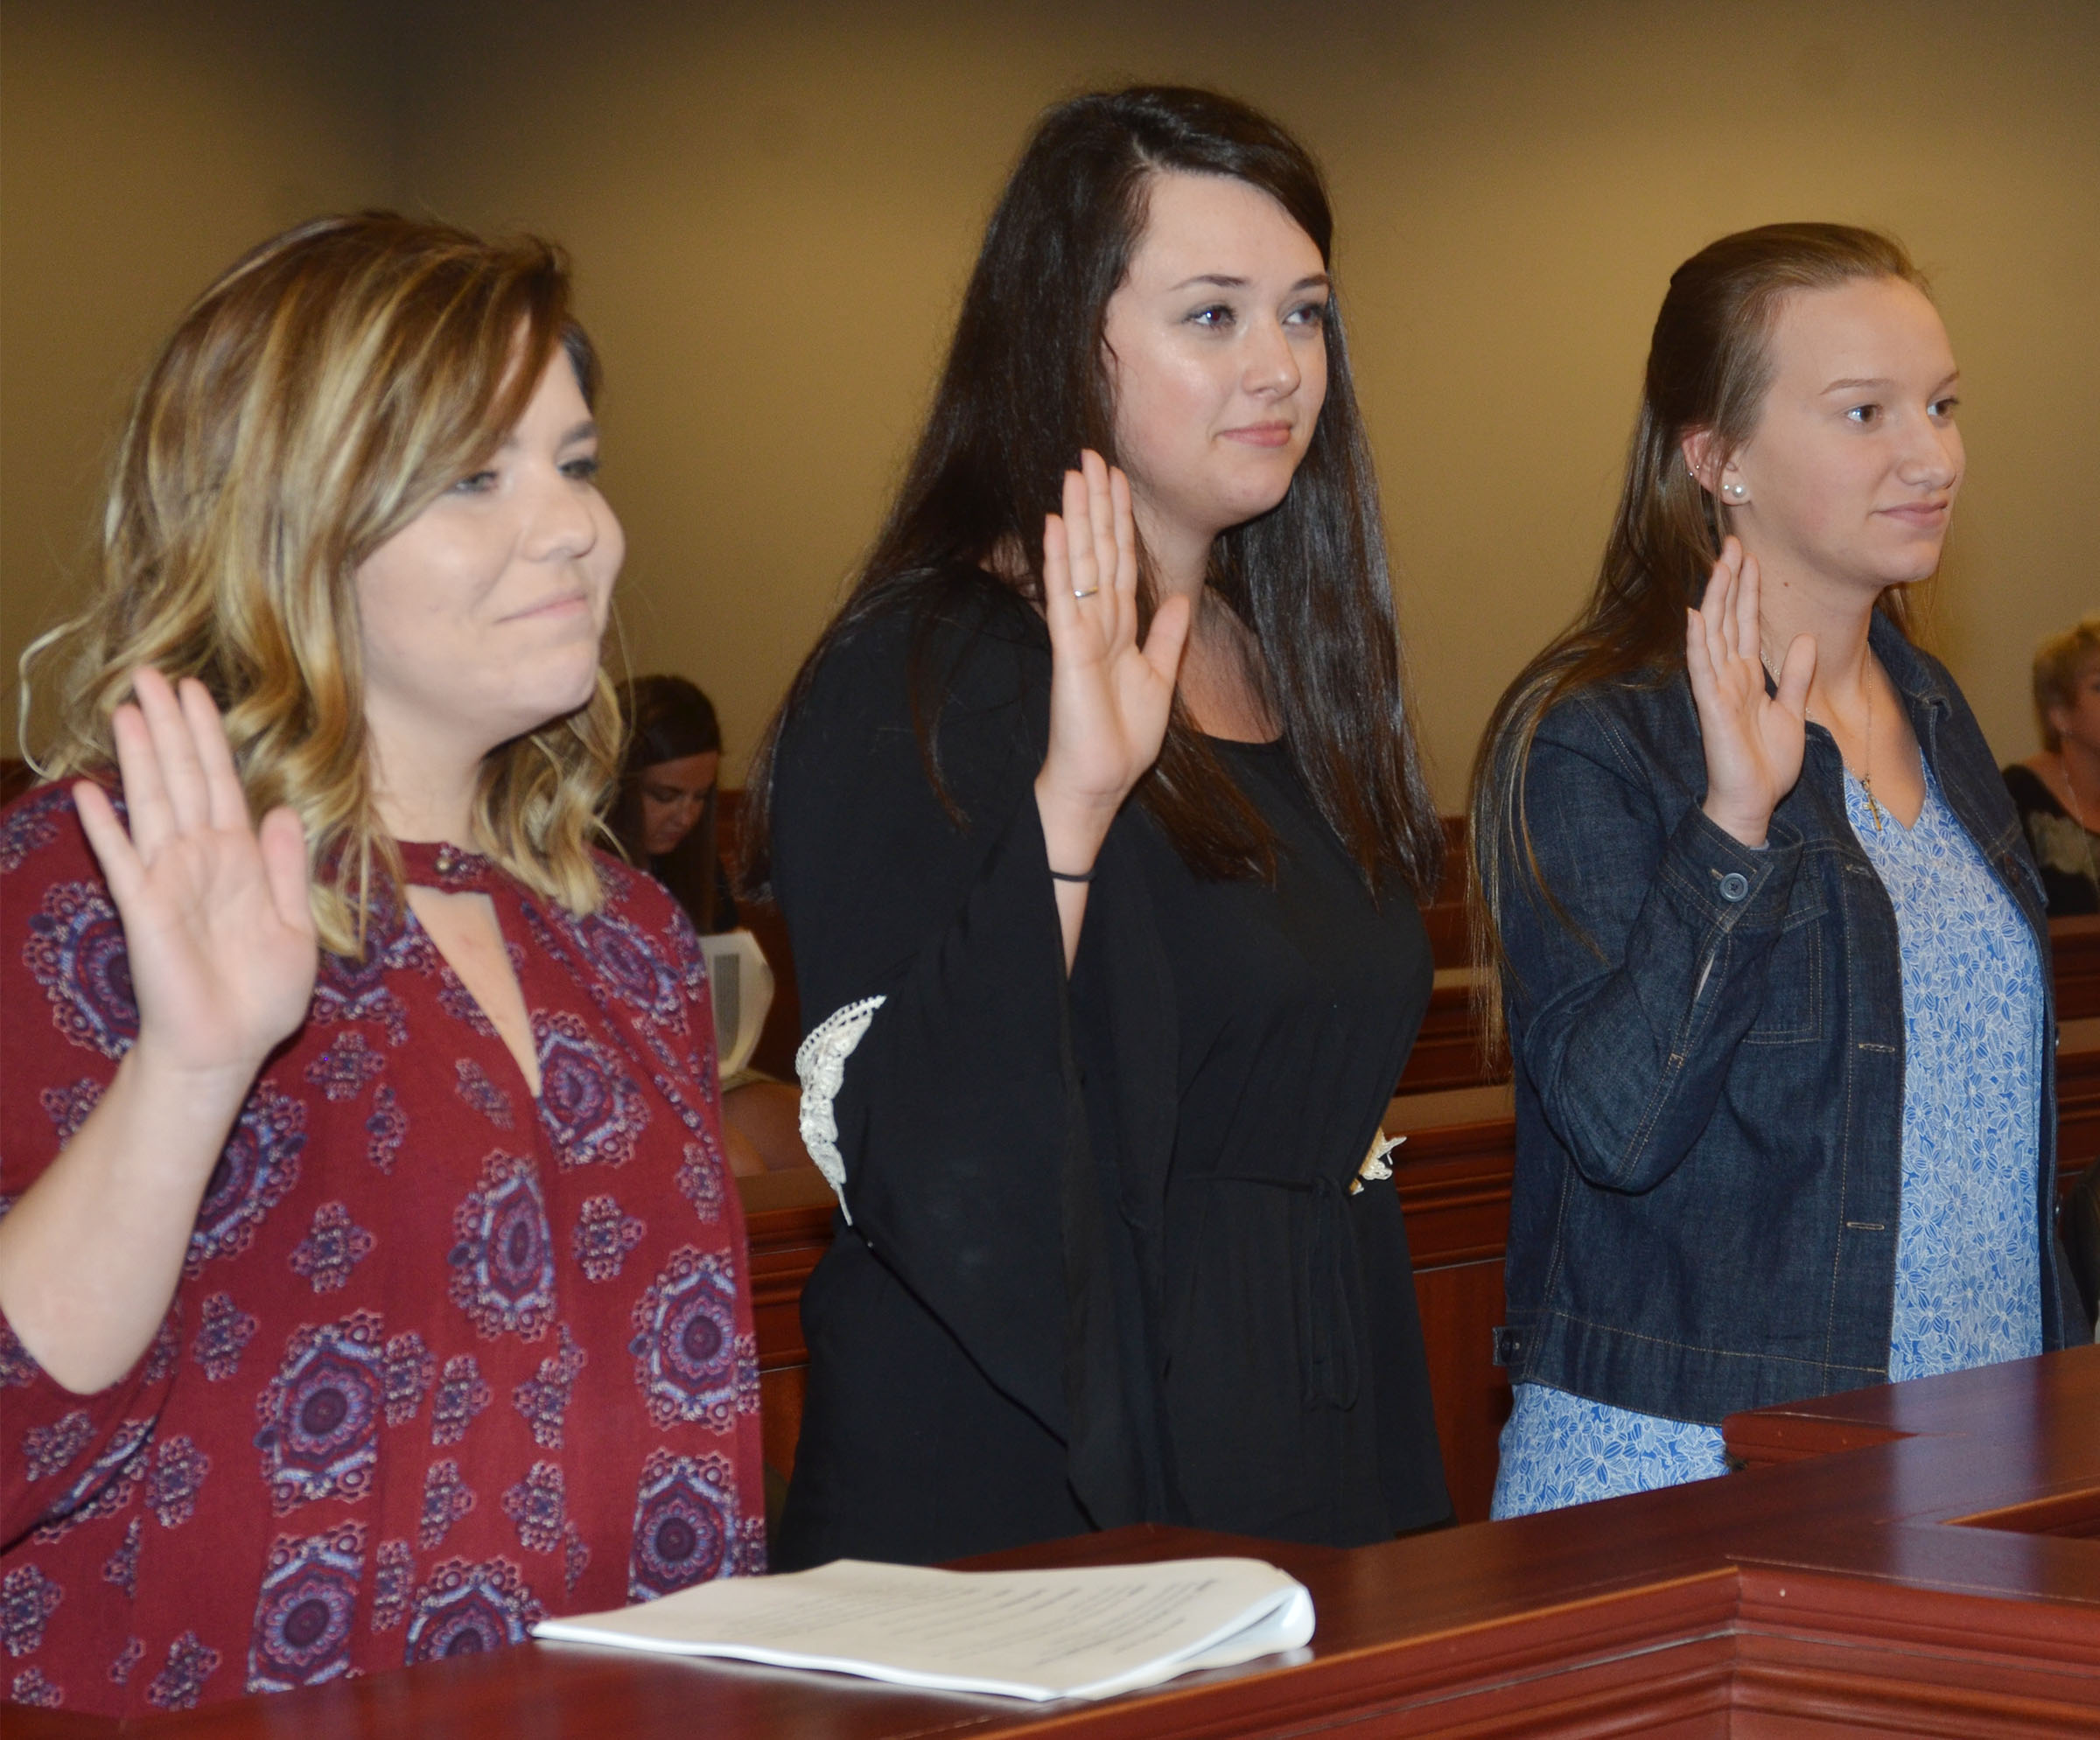 From left, CHS juniors Sara Farmer, Missy Vanorder and Madison Dial are sworn in as jurors during the mock trial.